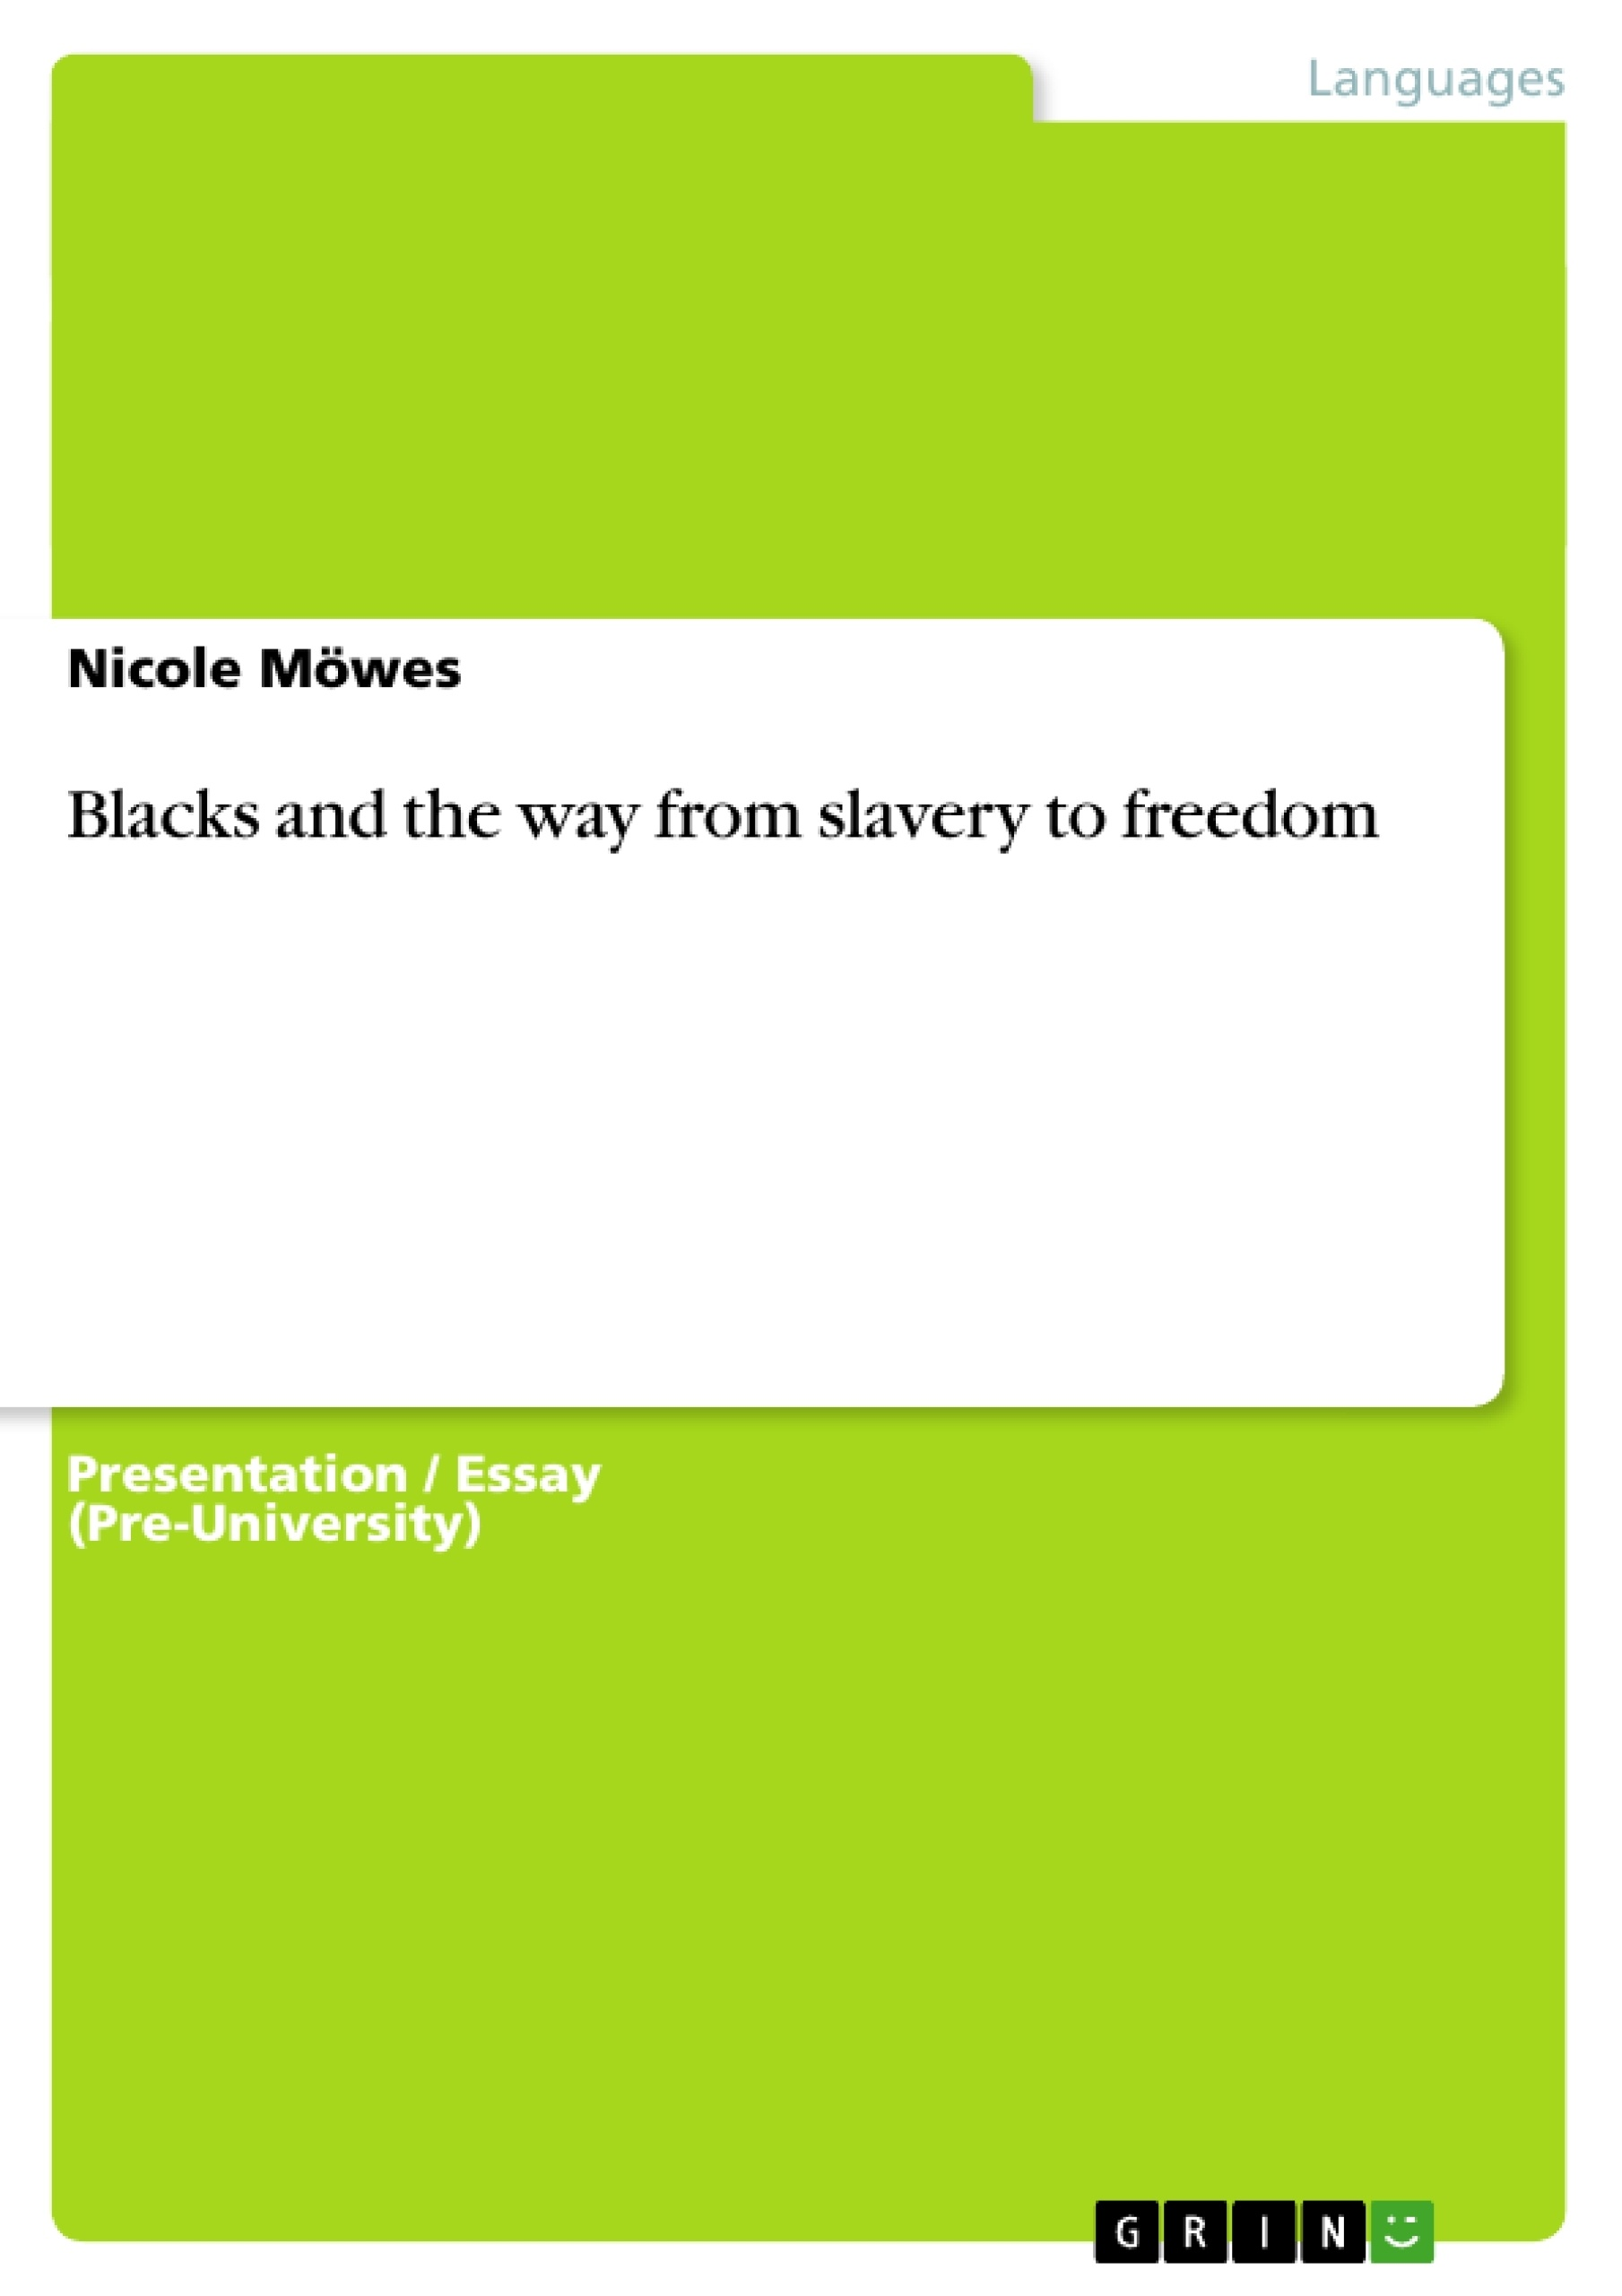 Title: Blacks and the way from slavery to freedom